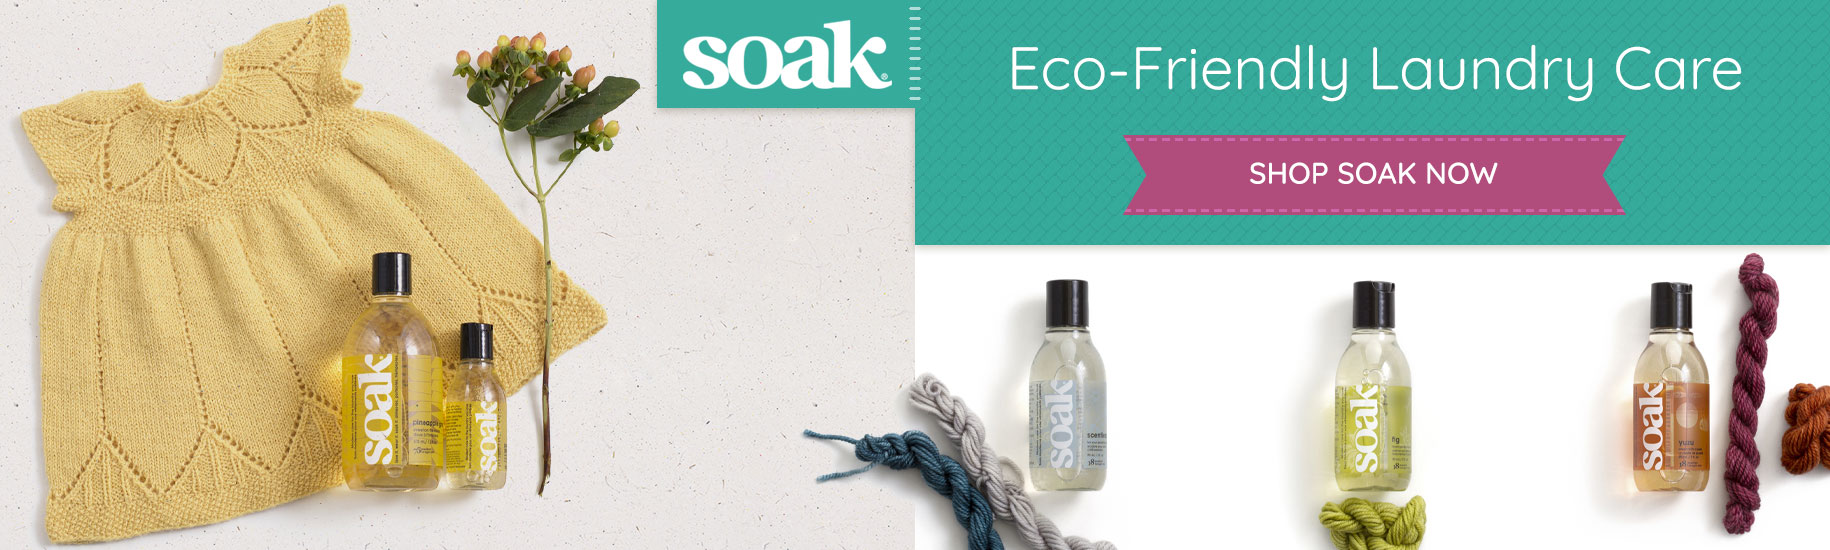 soak - Eco-friendly laundry care